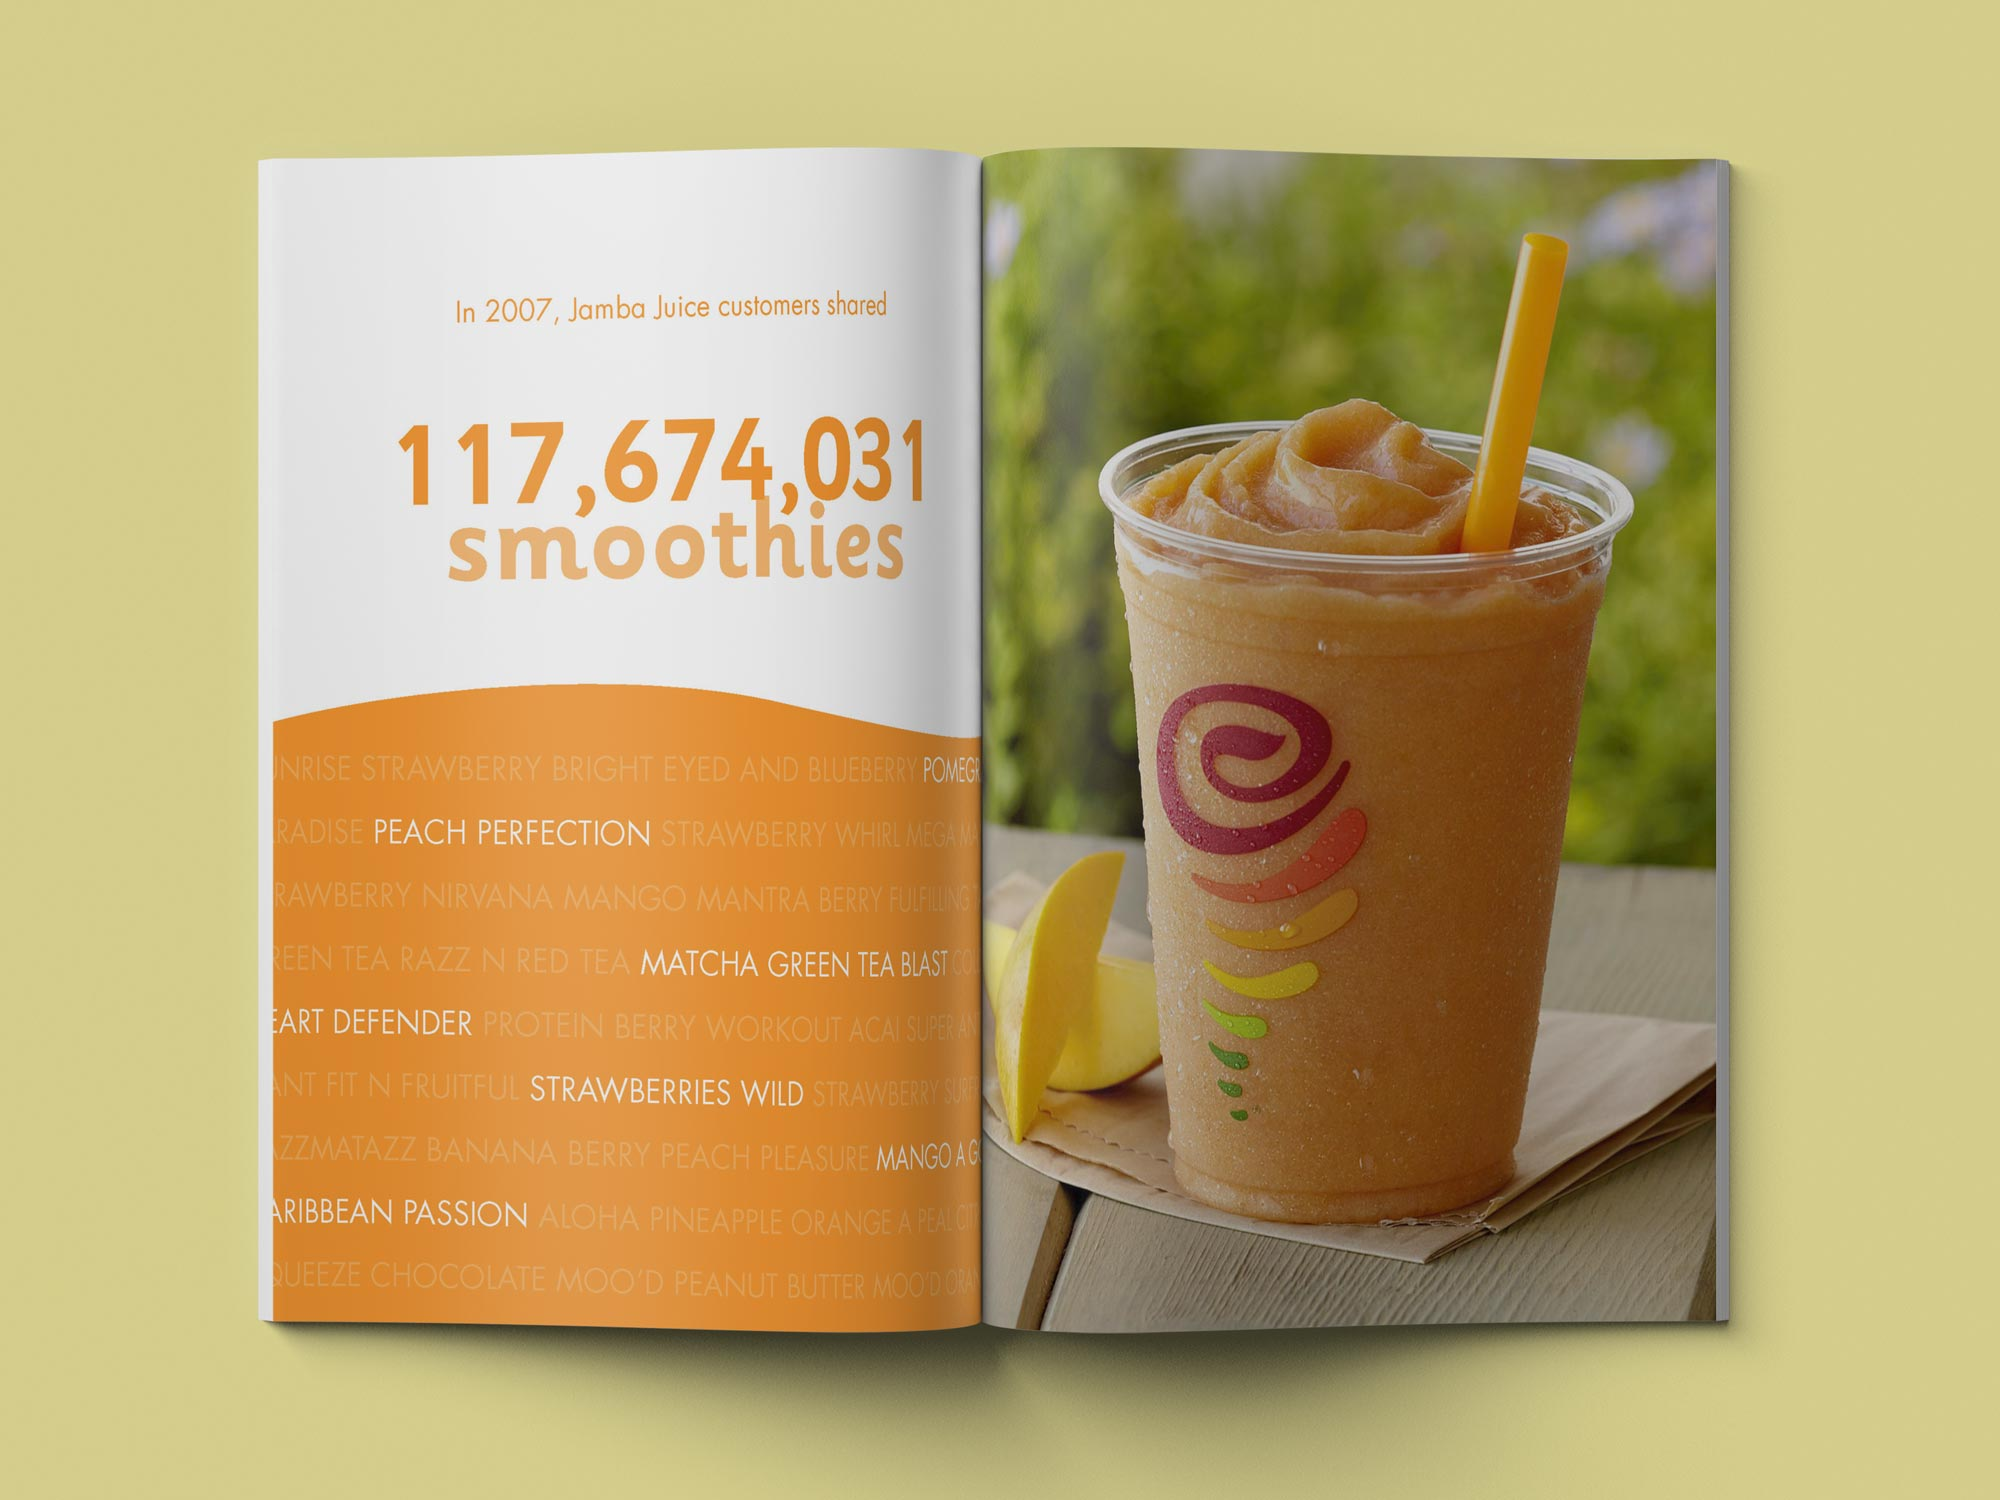 Jamba Juice Annual Report Smoothies Shared in 2007 spread.